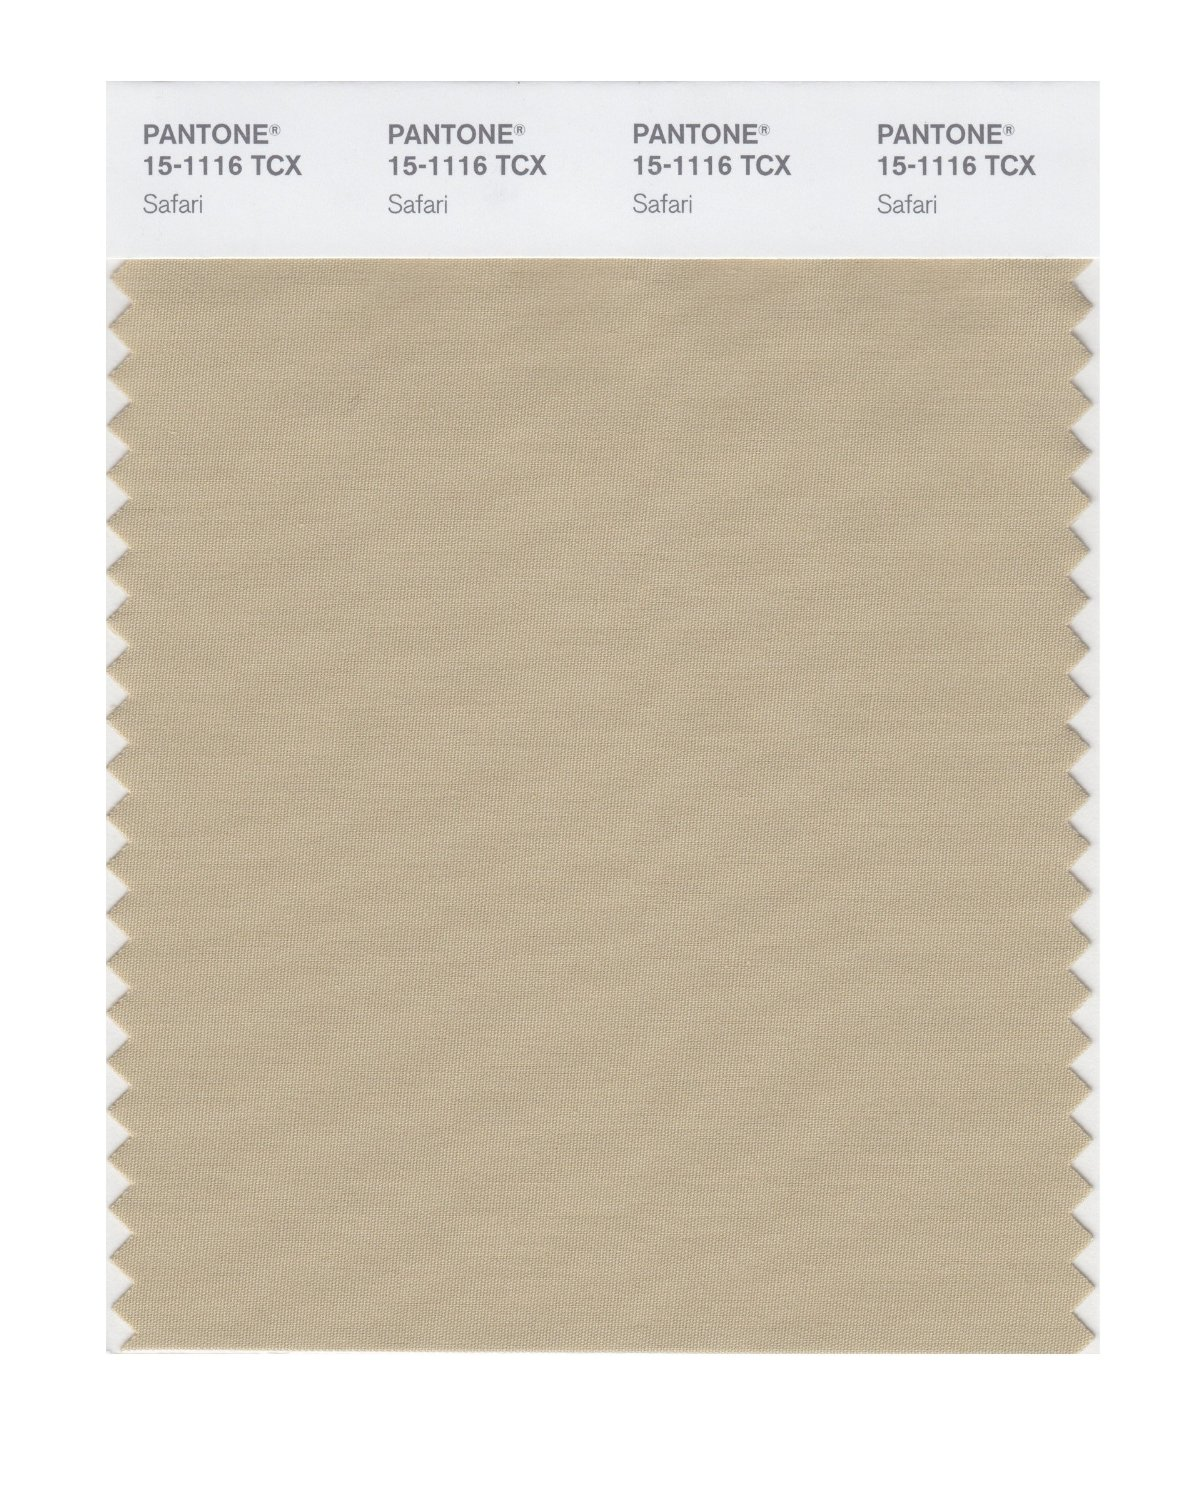 Pantone Smart Swatch 15-1116 Safari